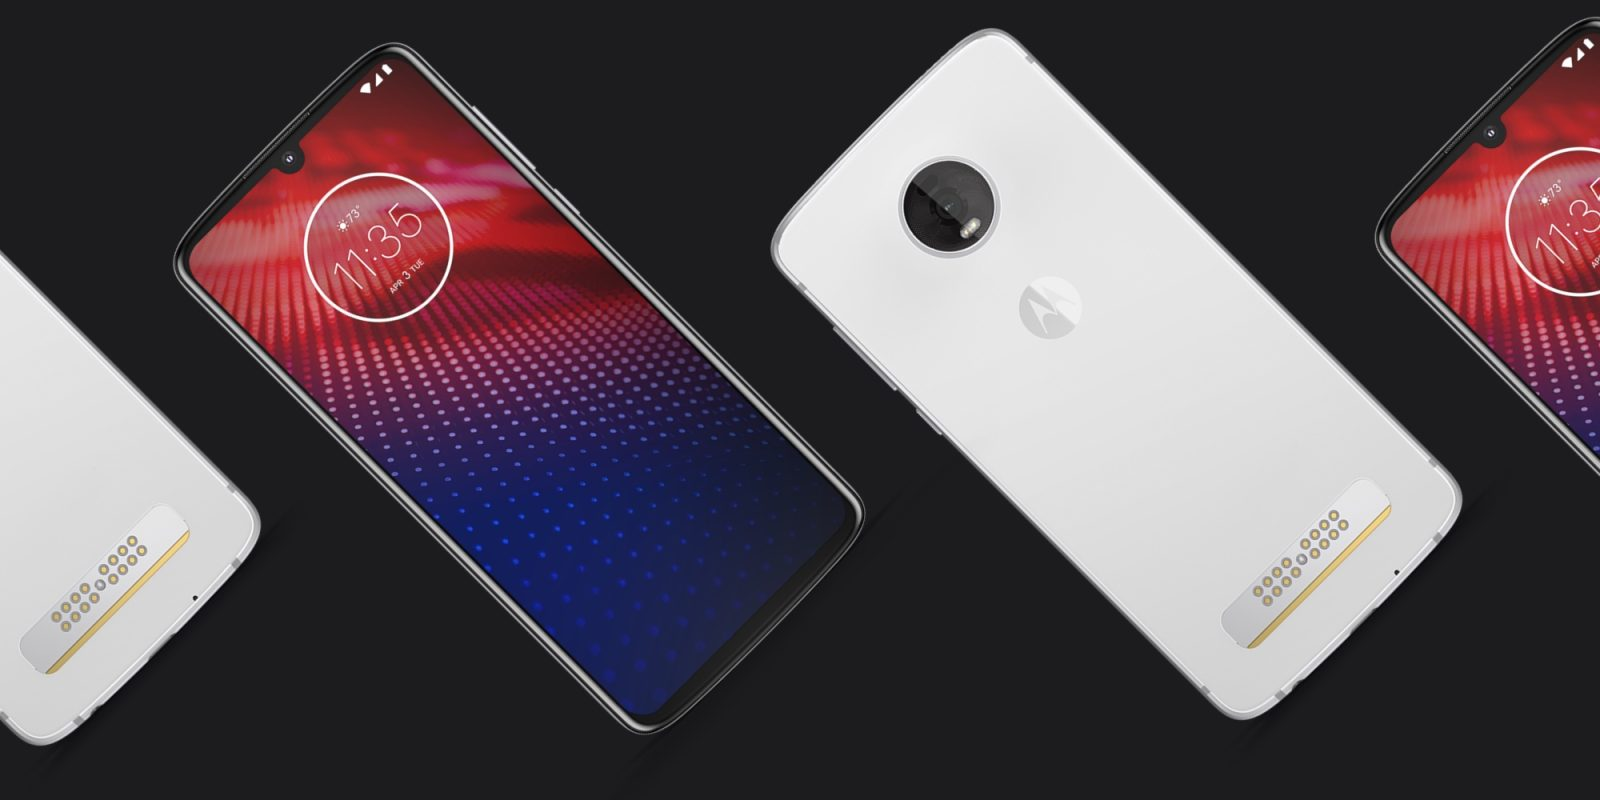 Snag Motorola's unlocked Moto Z4 Android Smartphone while its 50% off: $250